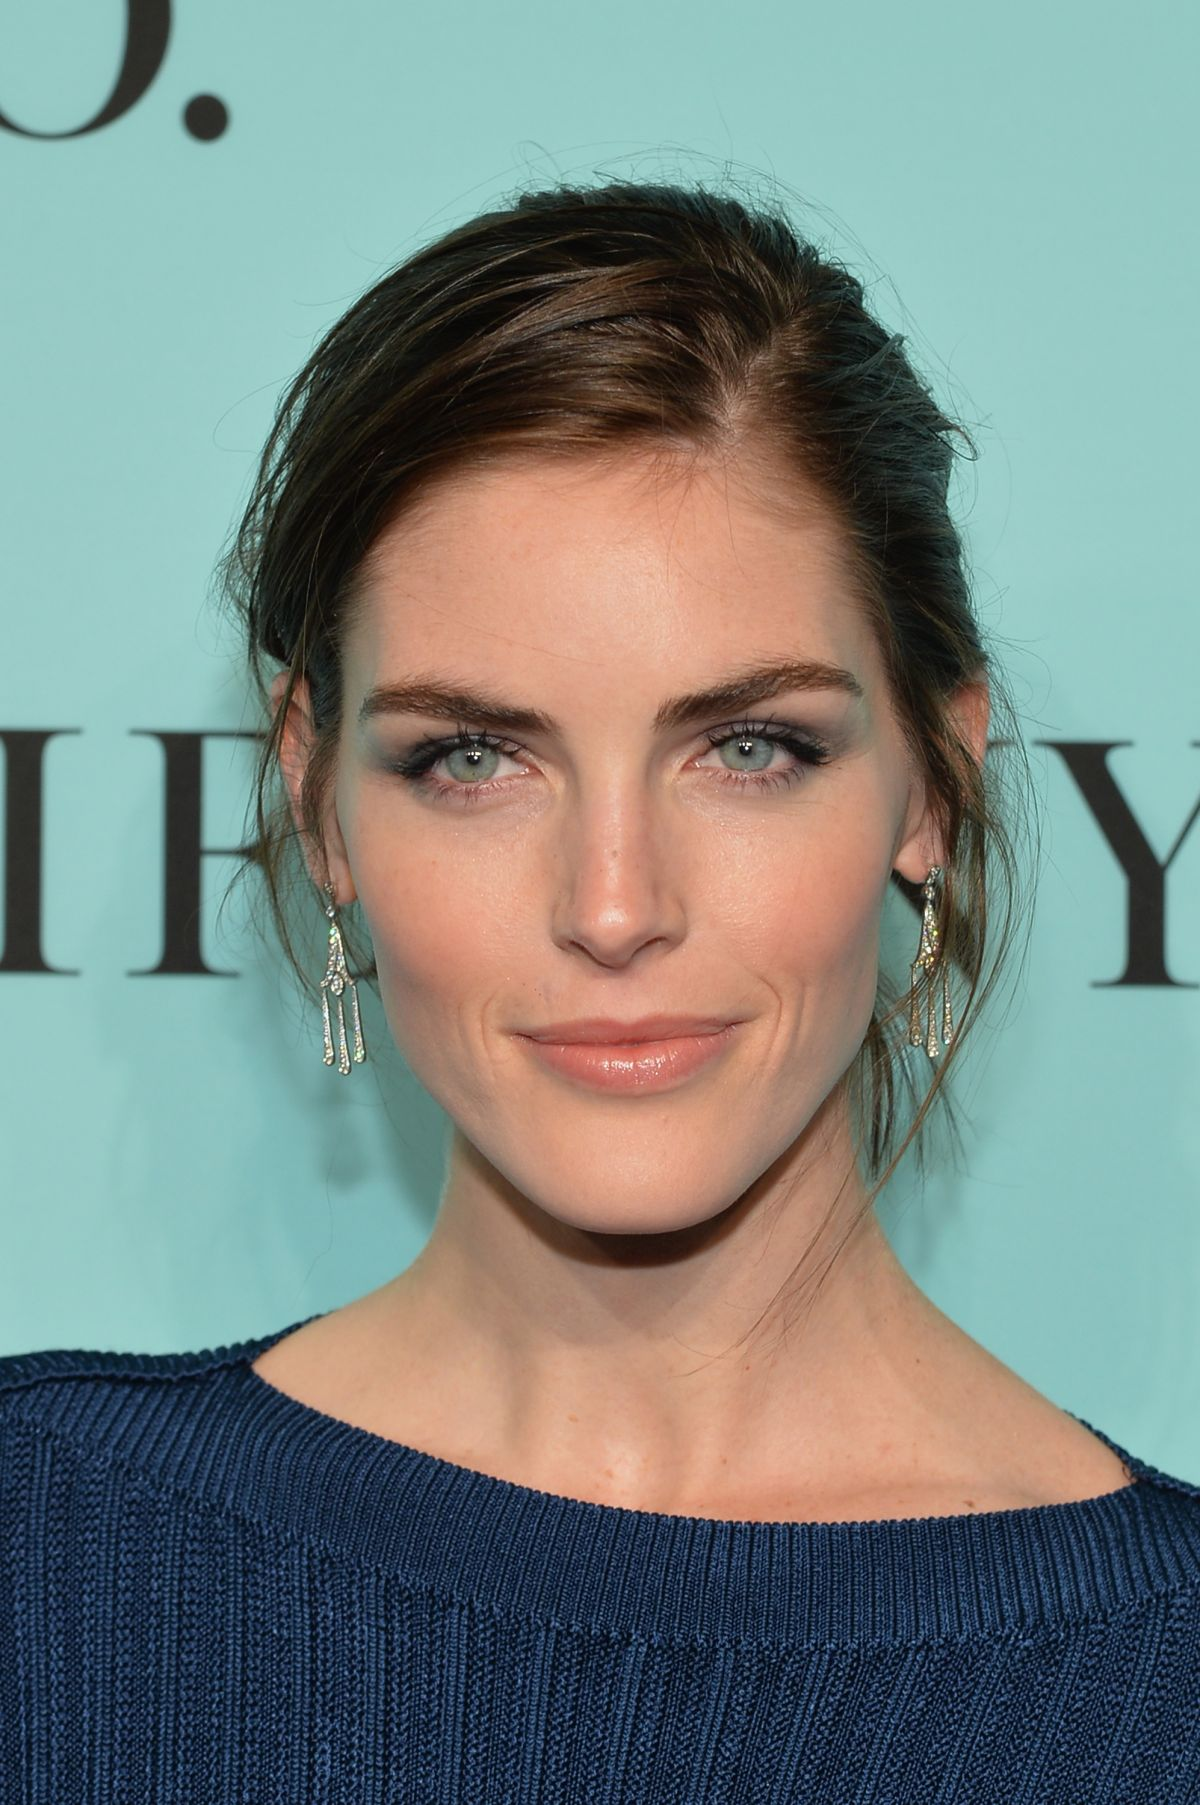 Hilary Rhoda High Quality Background on Wallpapers Vista